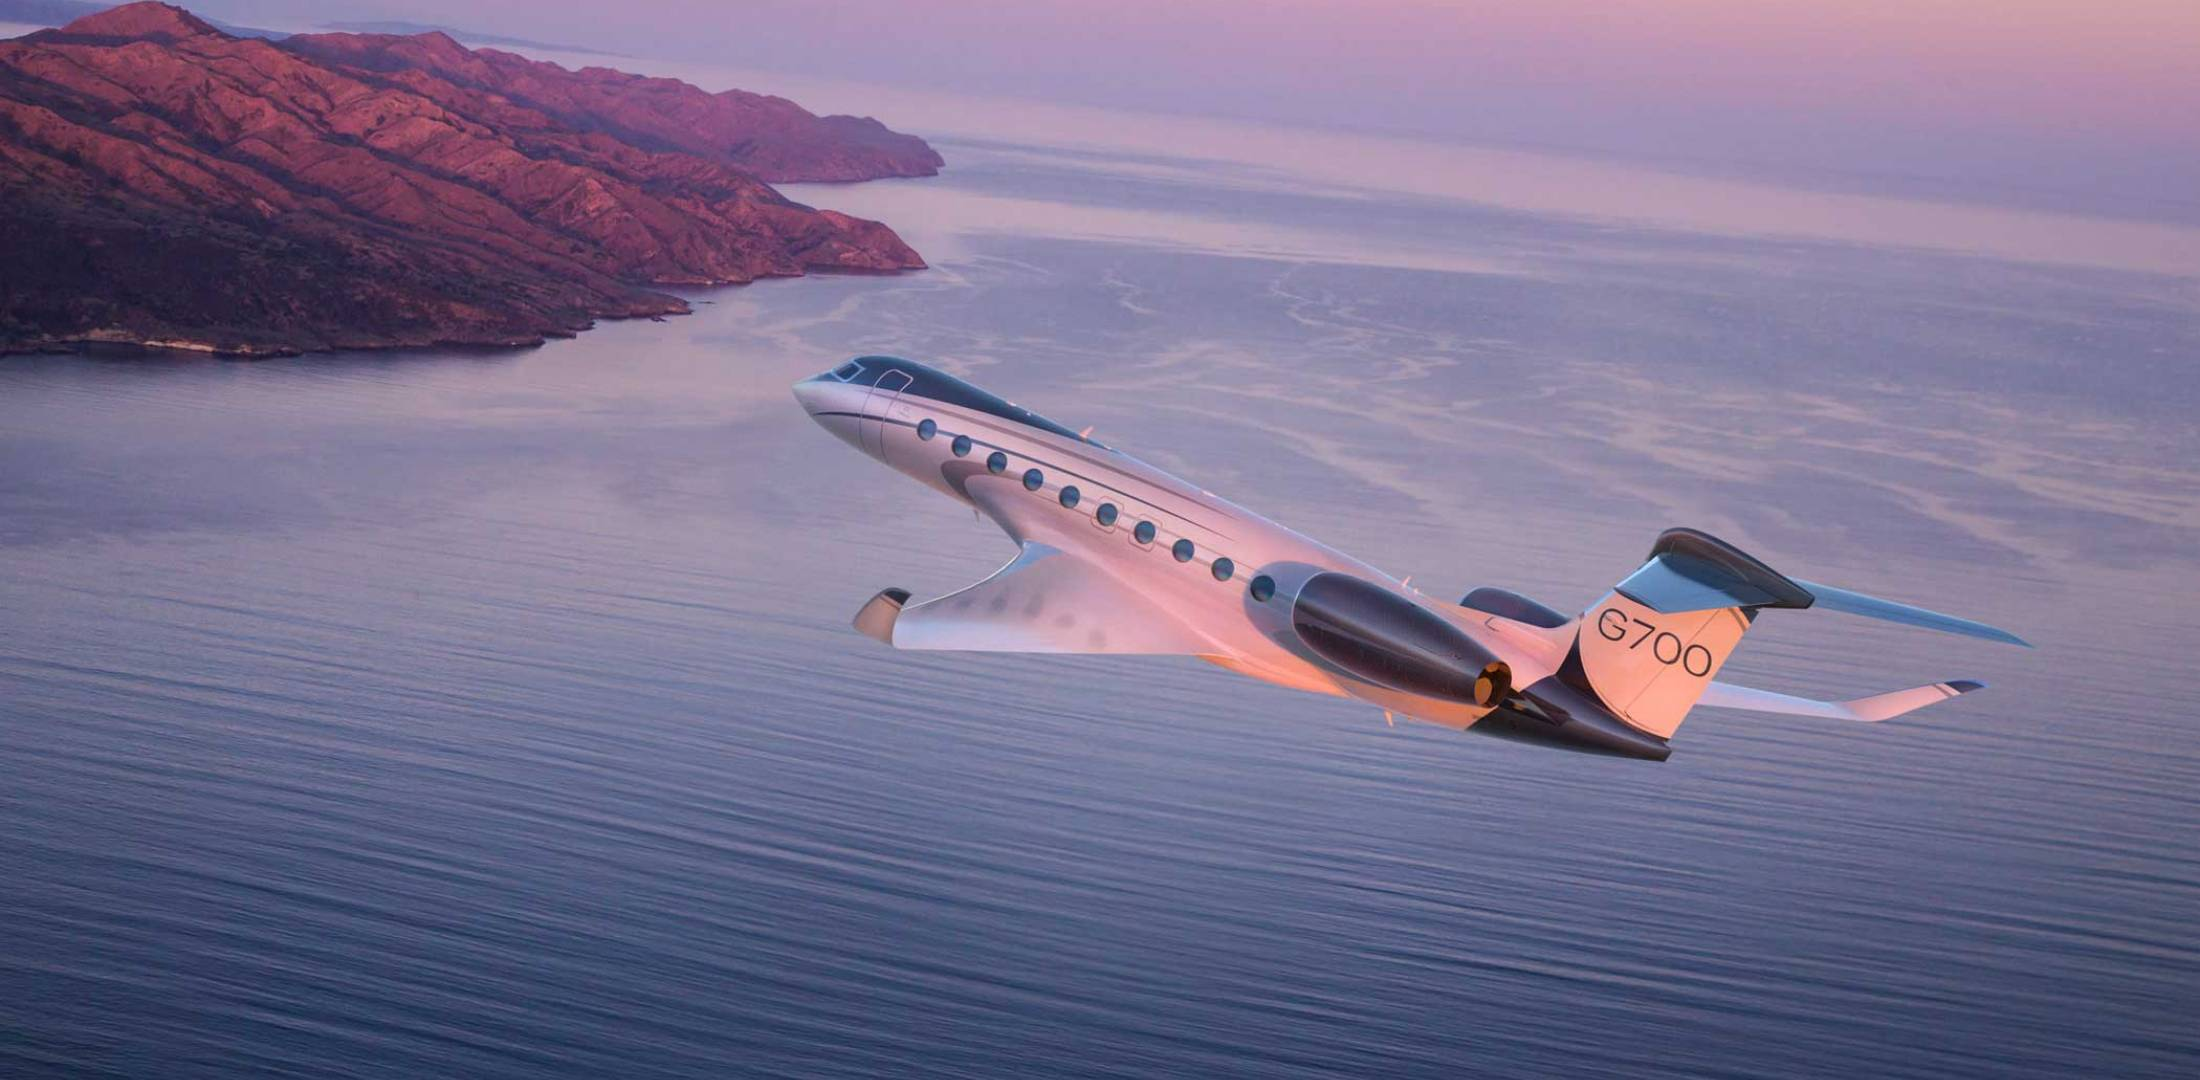 This new HK$587 million plane is the world's largest private jet